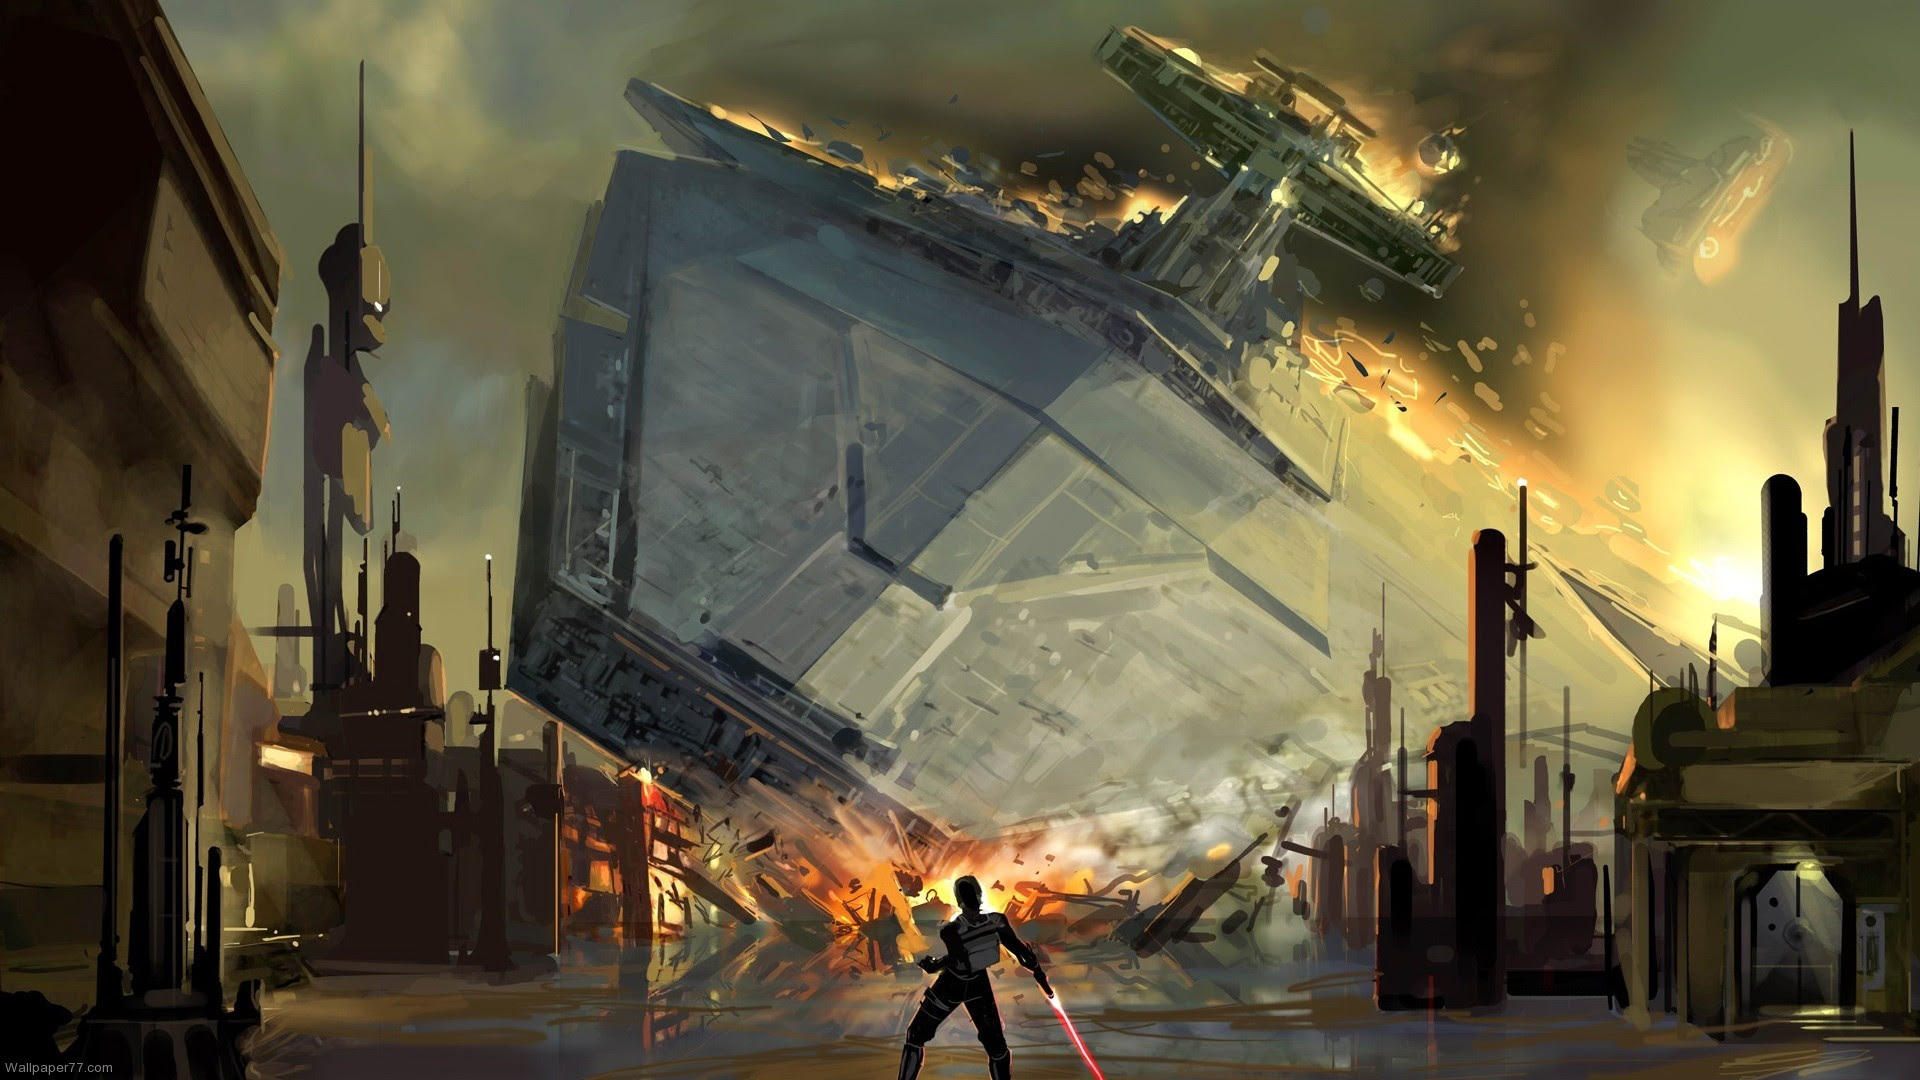 Star Wars Concept Art Wallpaper 67 Images